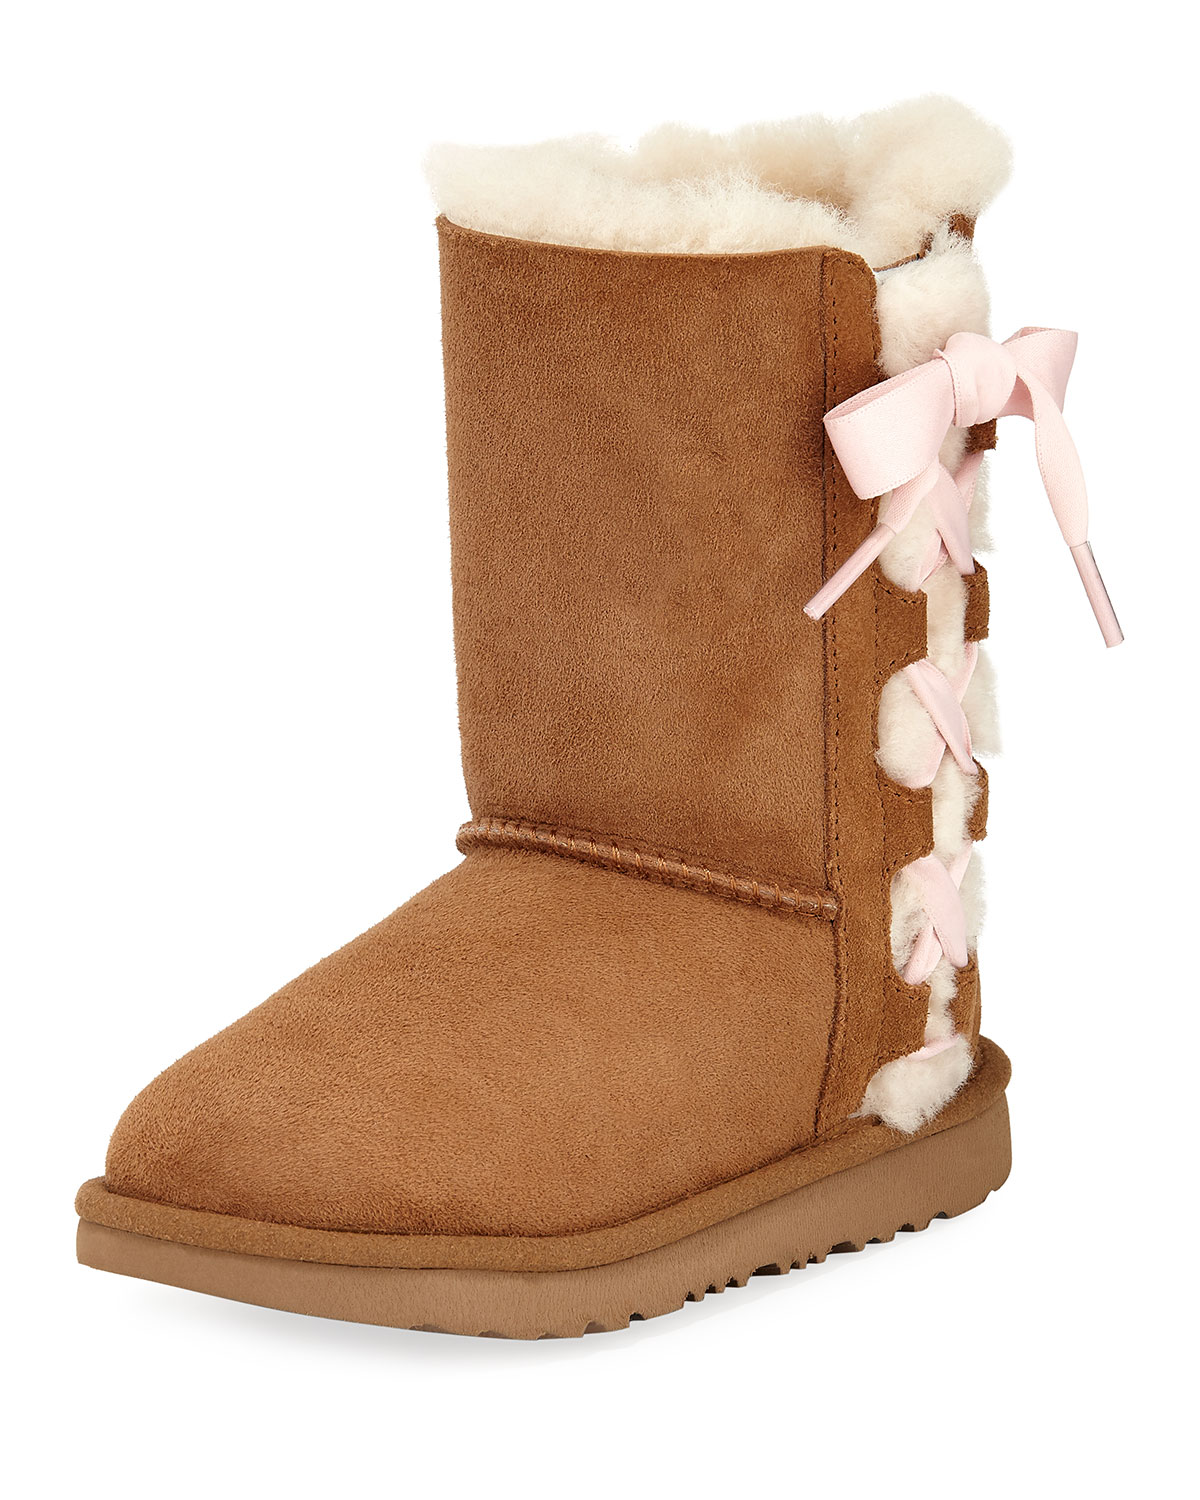 Ugg Pala Bow Boot Kid Sizes 13t 6y Neiman Marcus